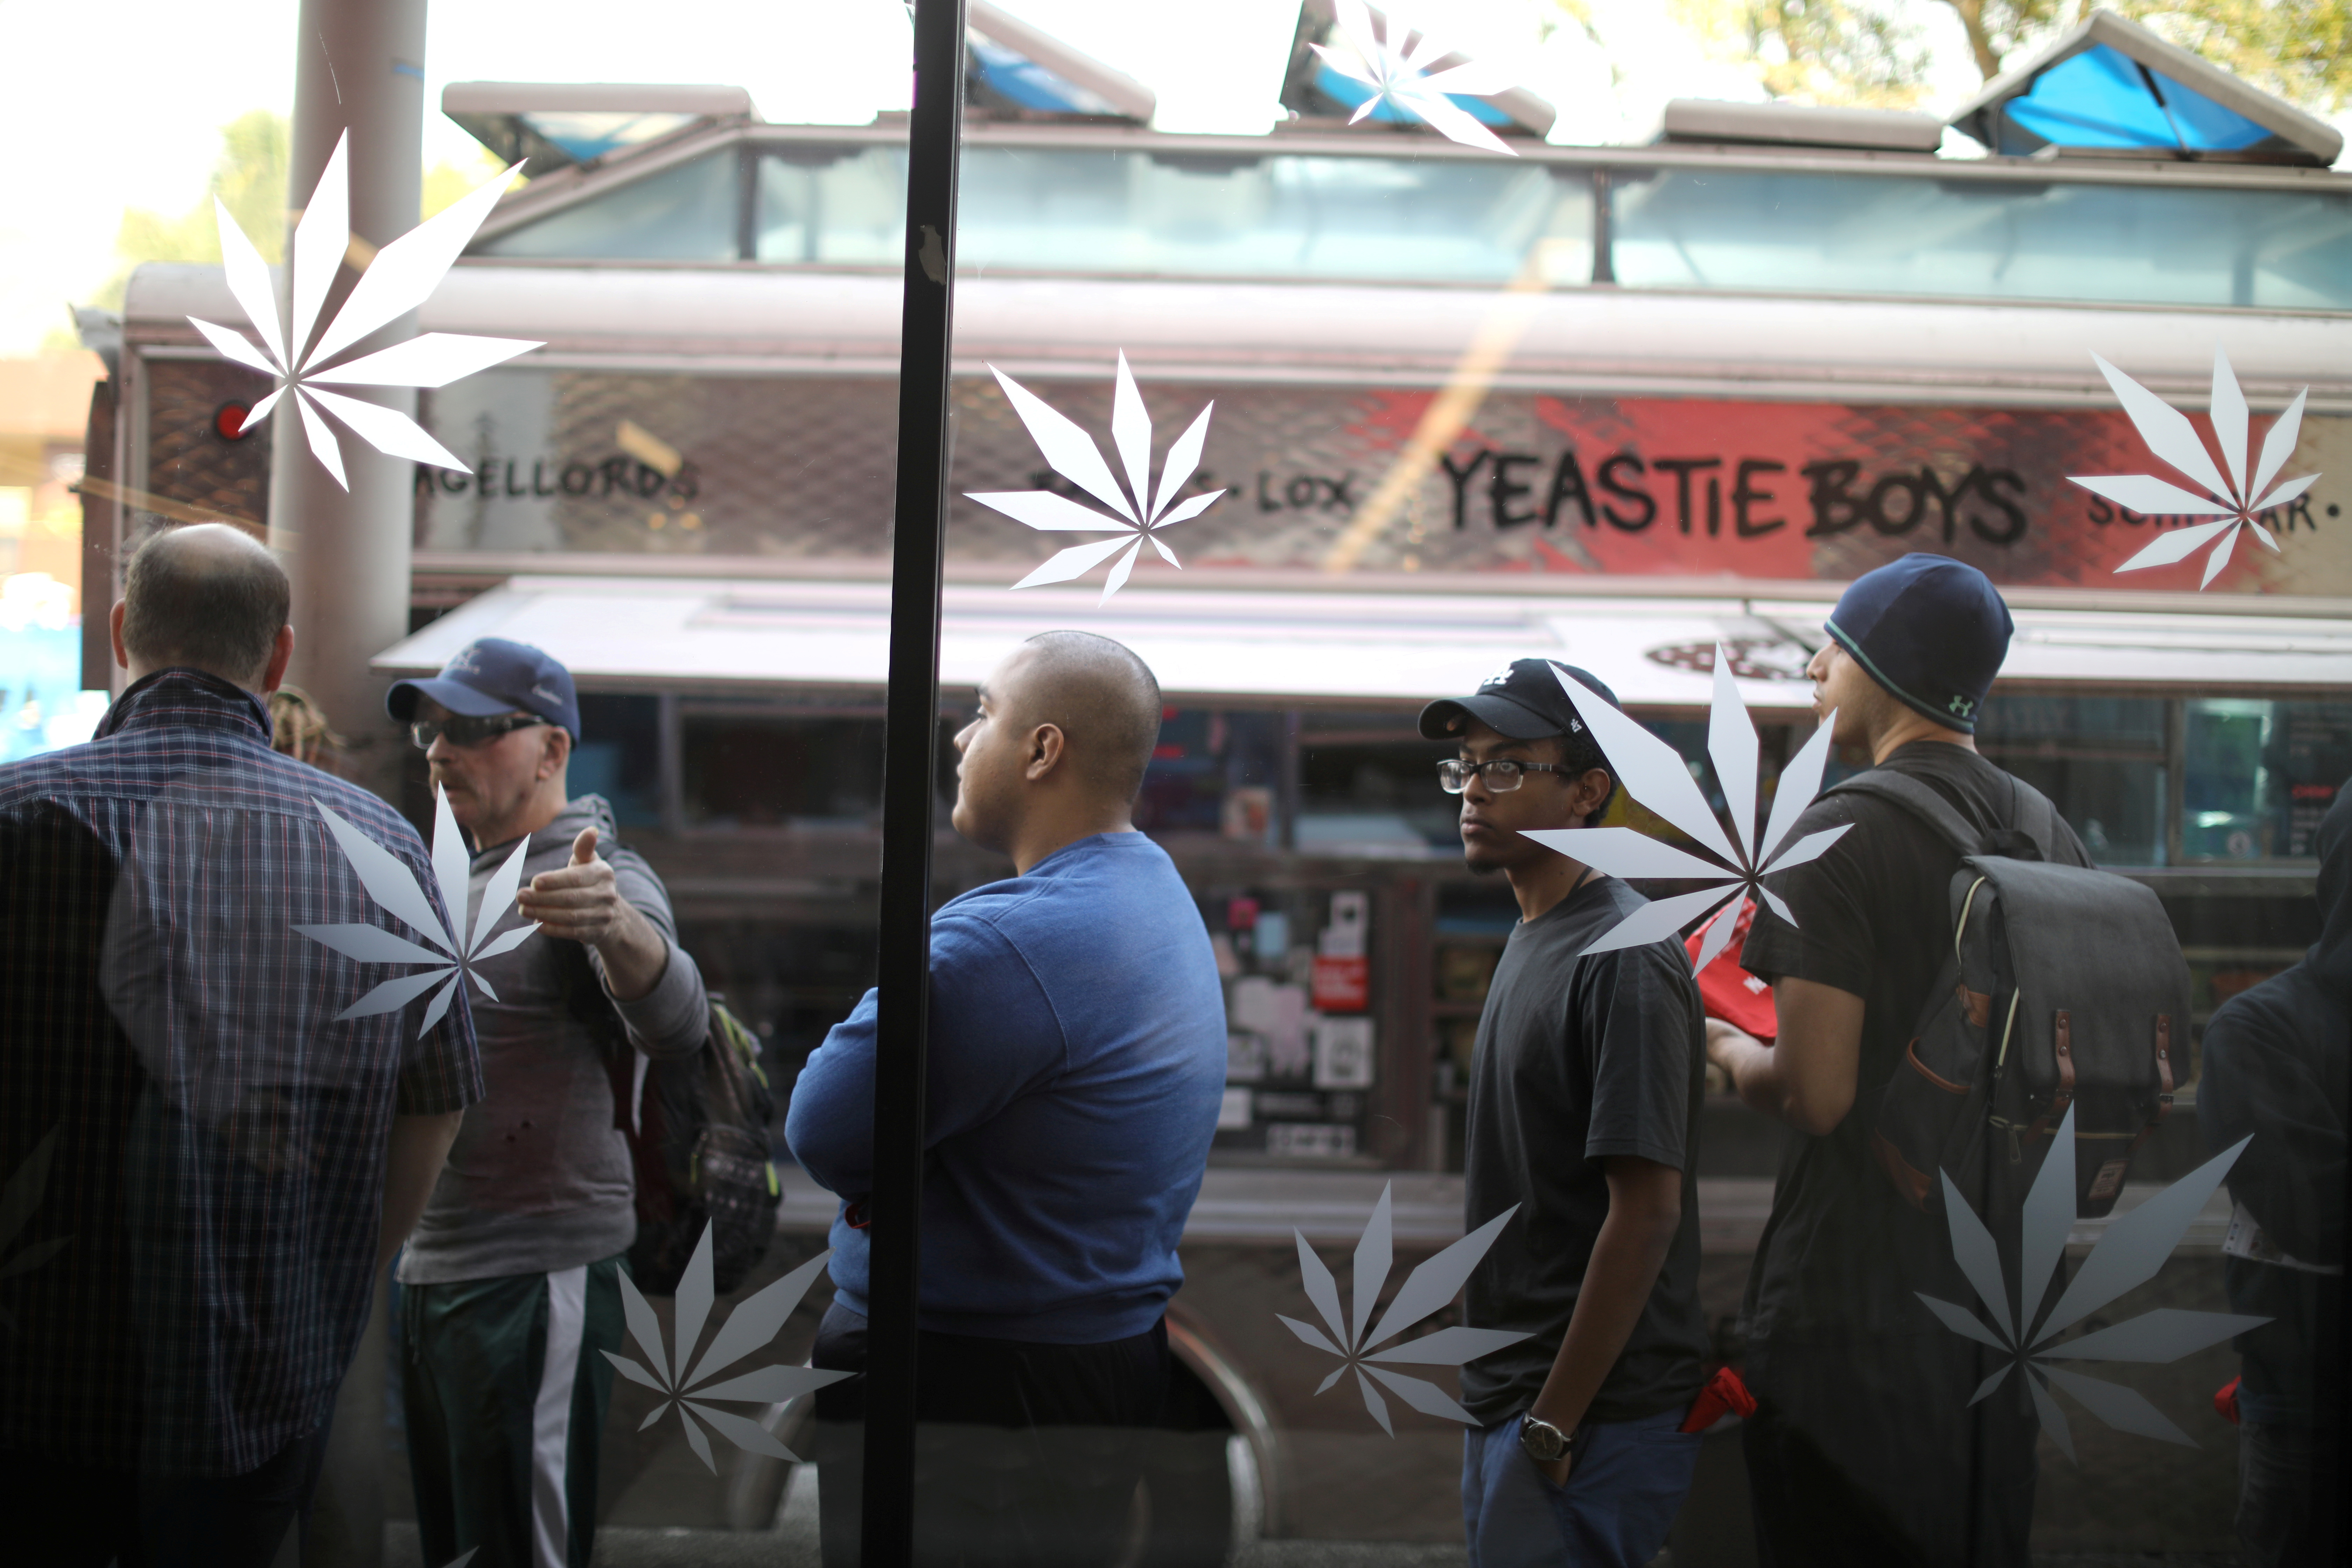 Customers queue for recreational marijuana outside the MedMen store in West Hollywood, California U.S. January 2, 2018. REUTERS/Lucy Nicholson/File Photo